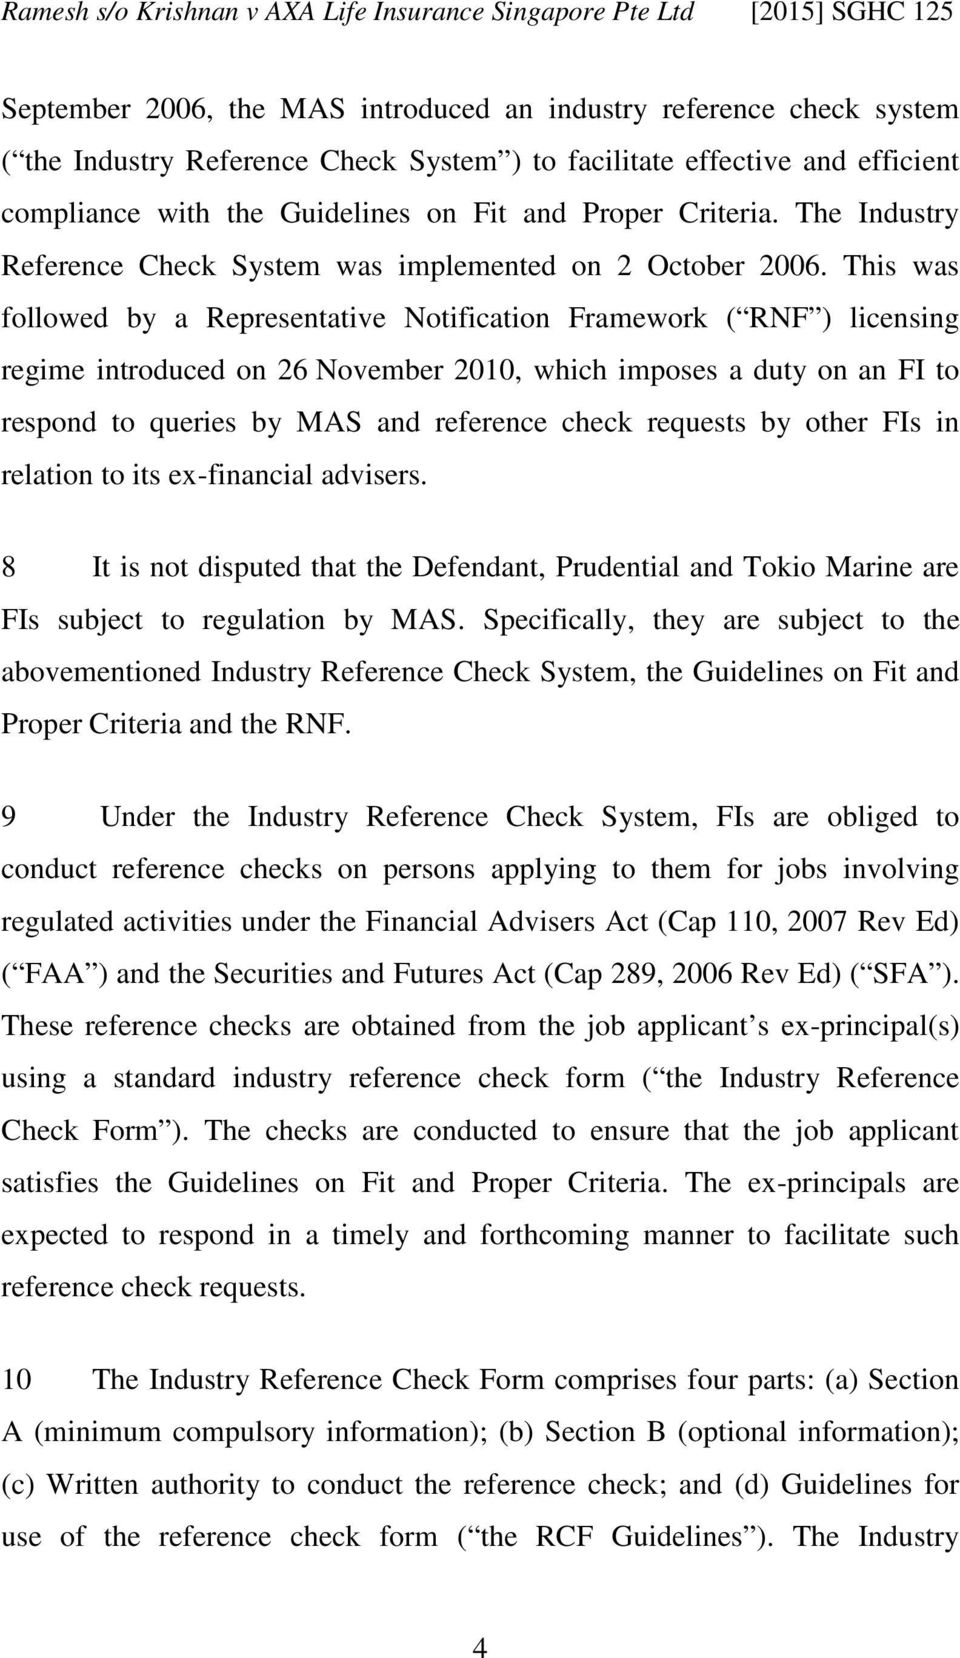 This was followed by a Representative Notification Framework ( RNF ) licensing regime introduced on 26 November 2010, which imposes a duty on an FI to respond to queries by MAS and reference check